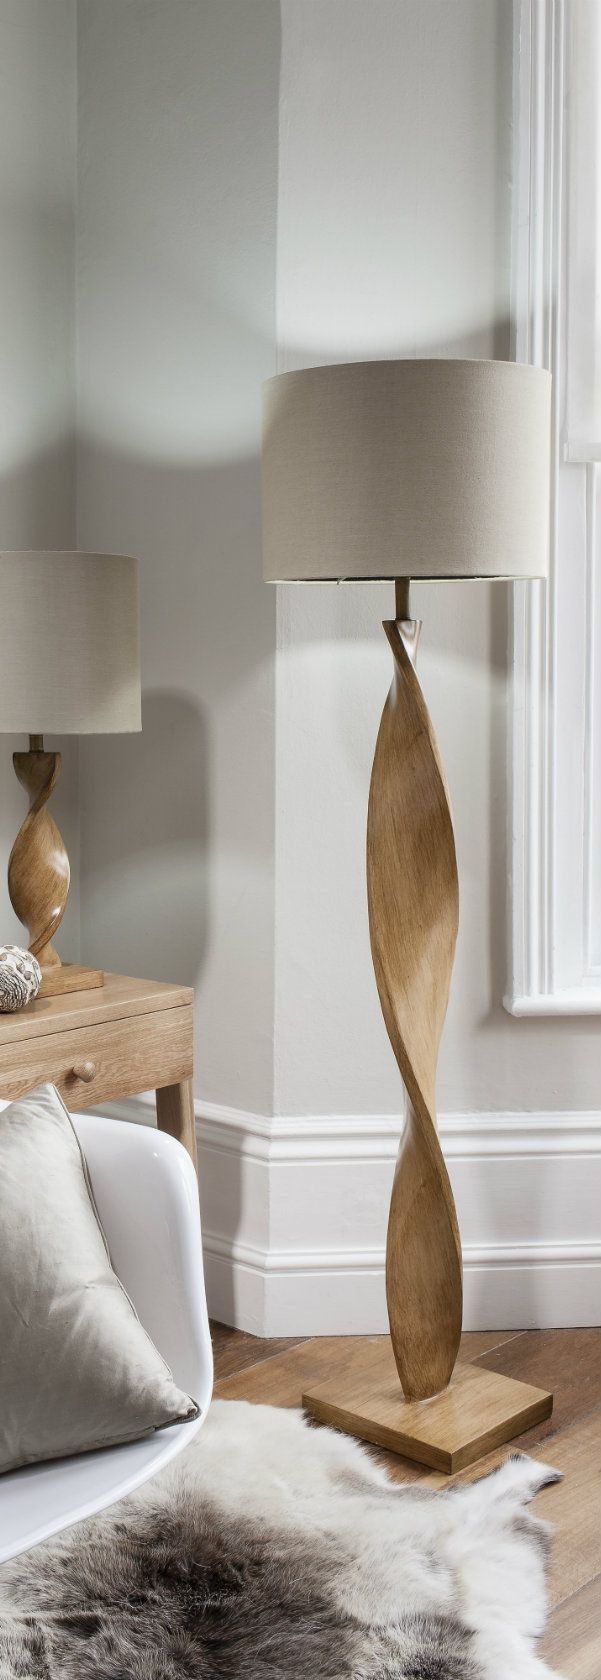 Best 25+ Floor lamps ideas on Pinterest | Floor lamp ...